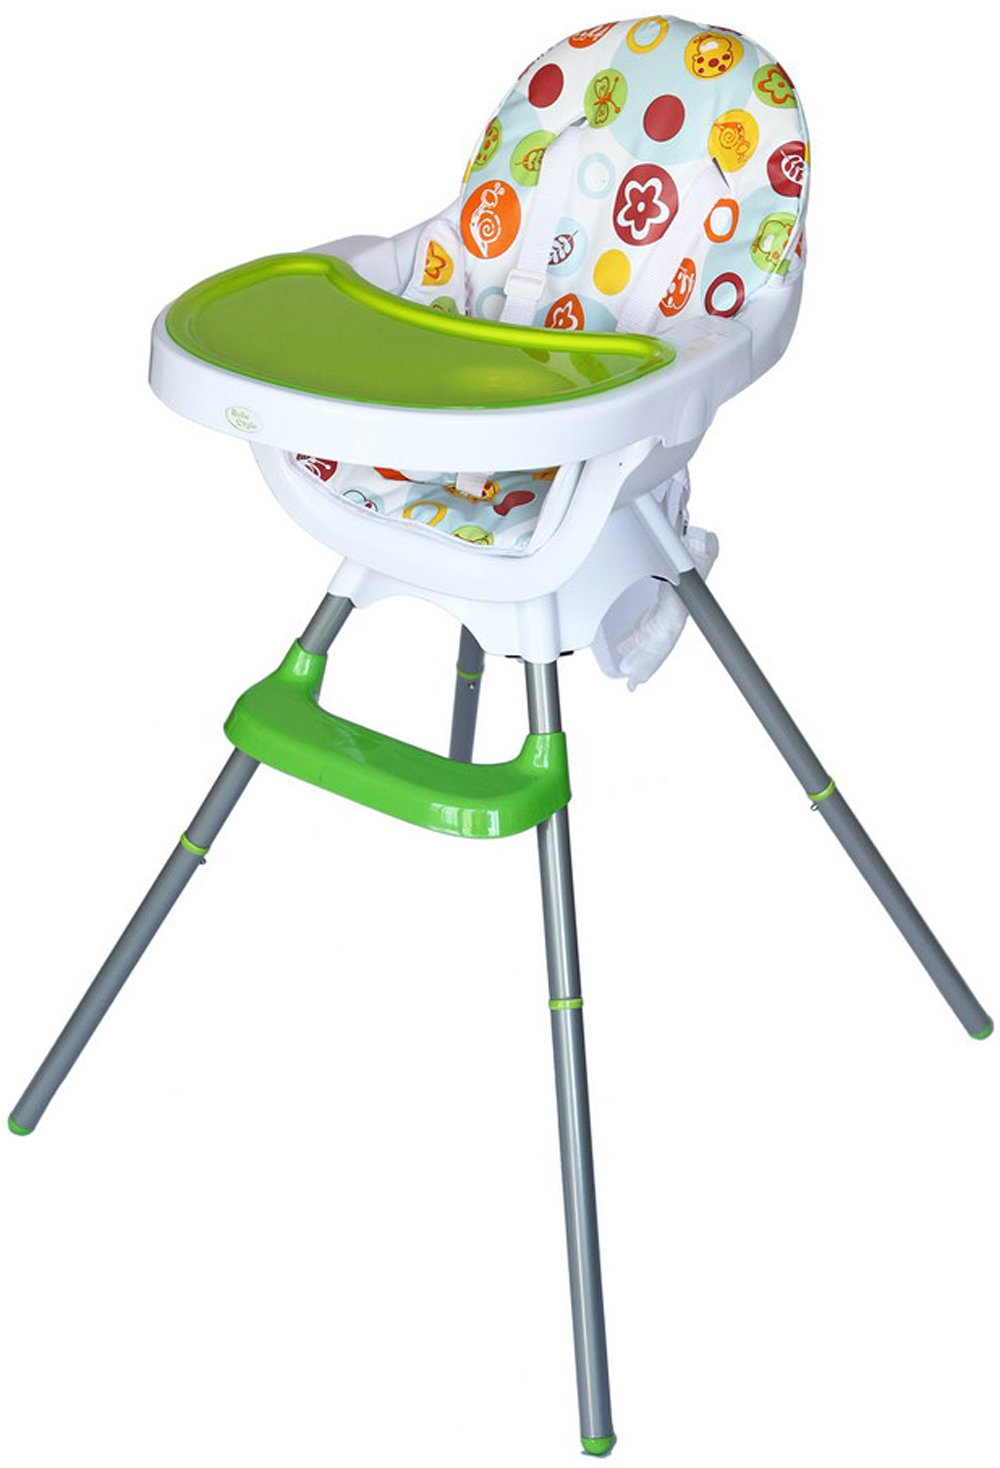 bebe style deluxe in modern highchair junior chair and  - bebe style deluxe in modern highchair junior chair and booster(green) amazoncouk baby